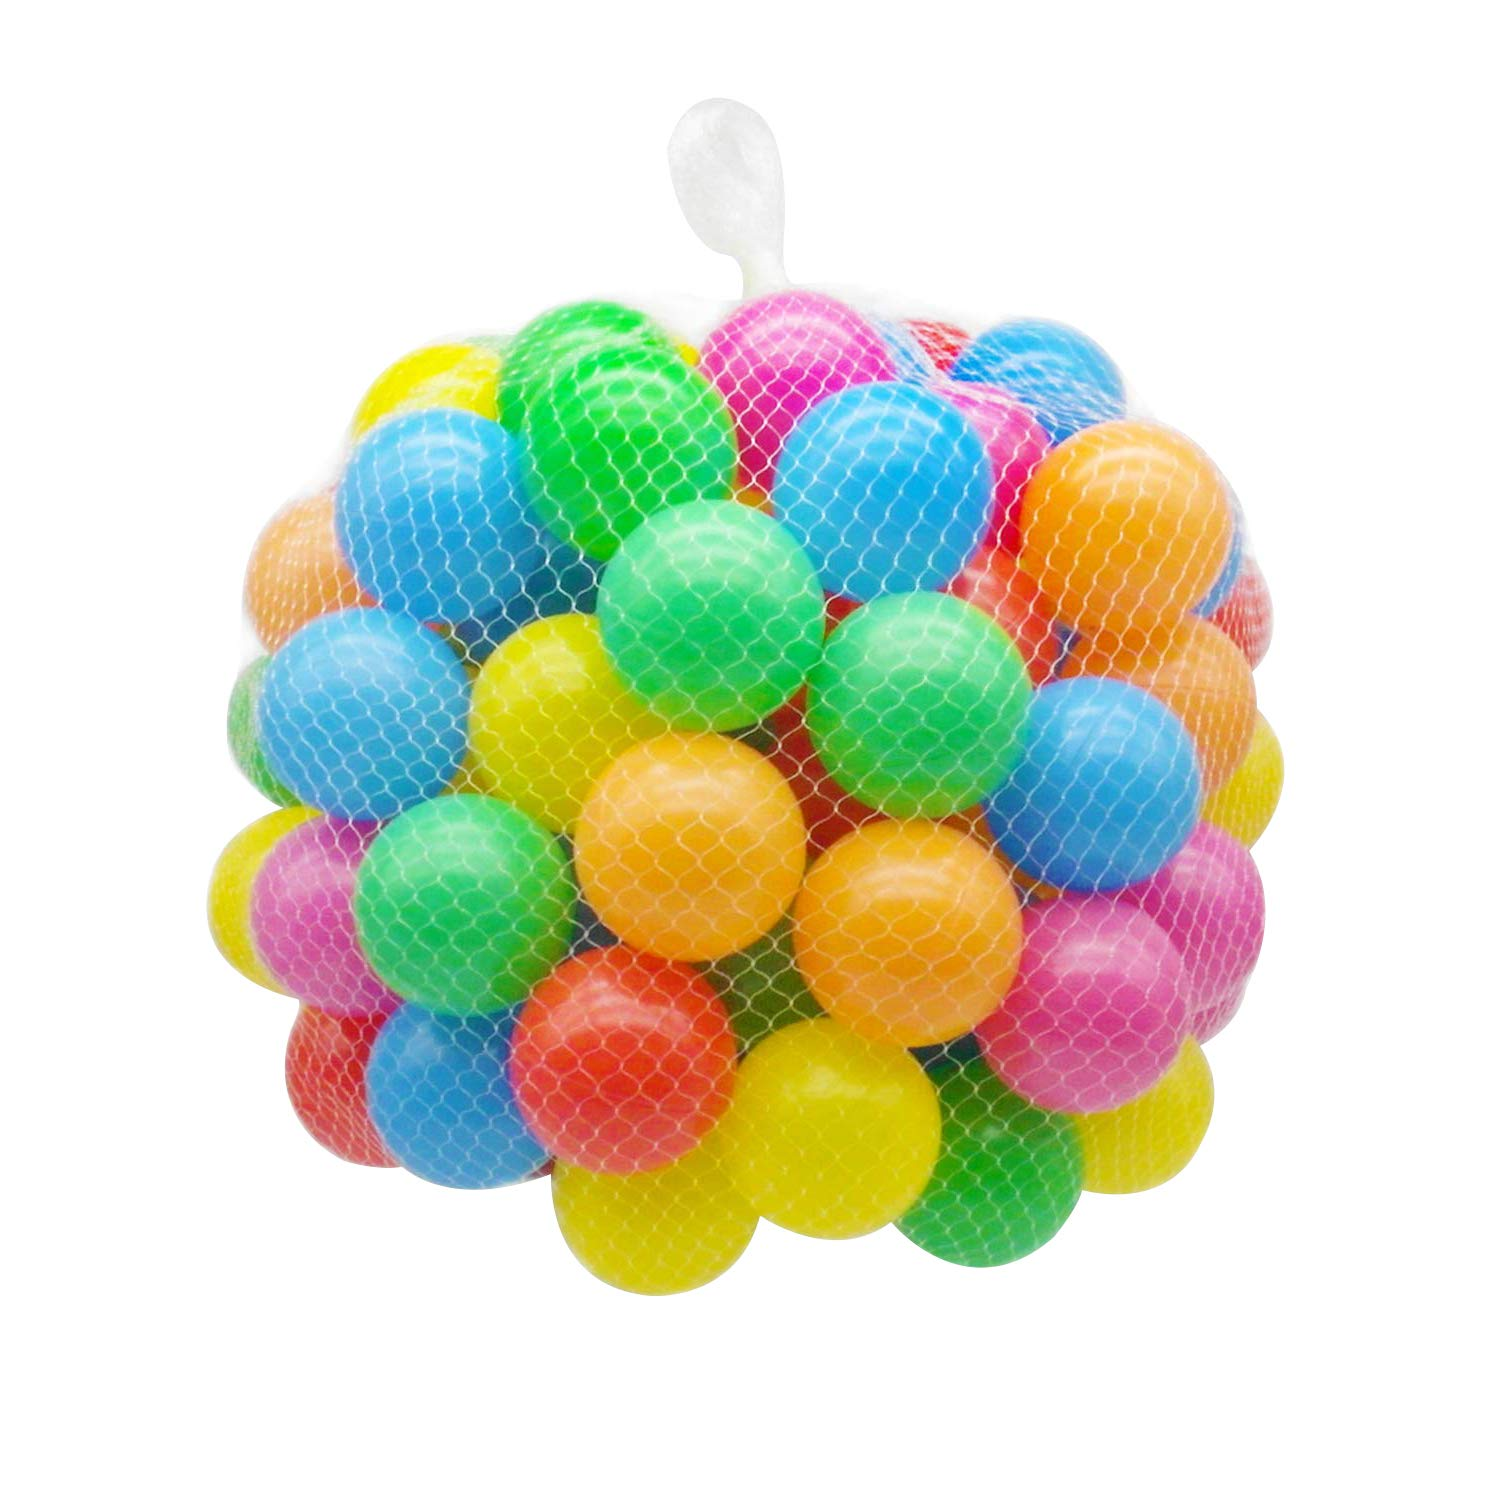 Binwwede Kids Ocean Ball 5 Colors Toddler Baby Ball Pit Pack of 100 Plastic Play Balls (20pcs)